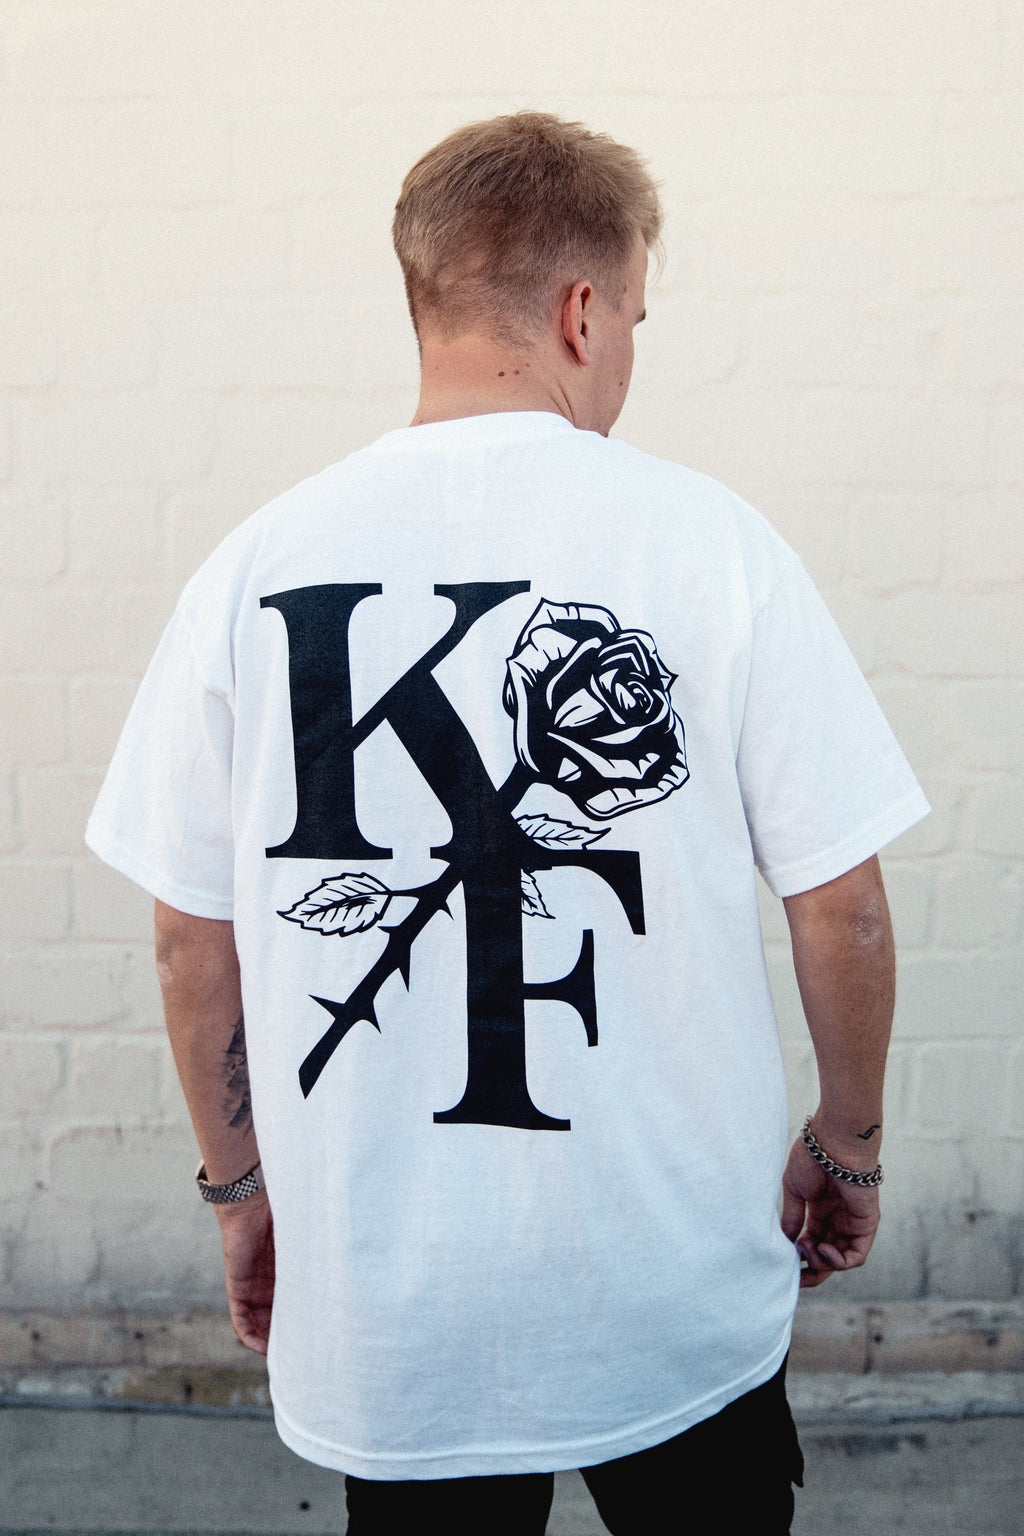 KF ROSE SHIRT (white)